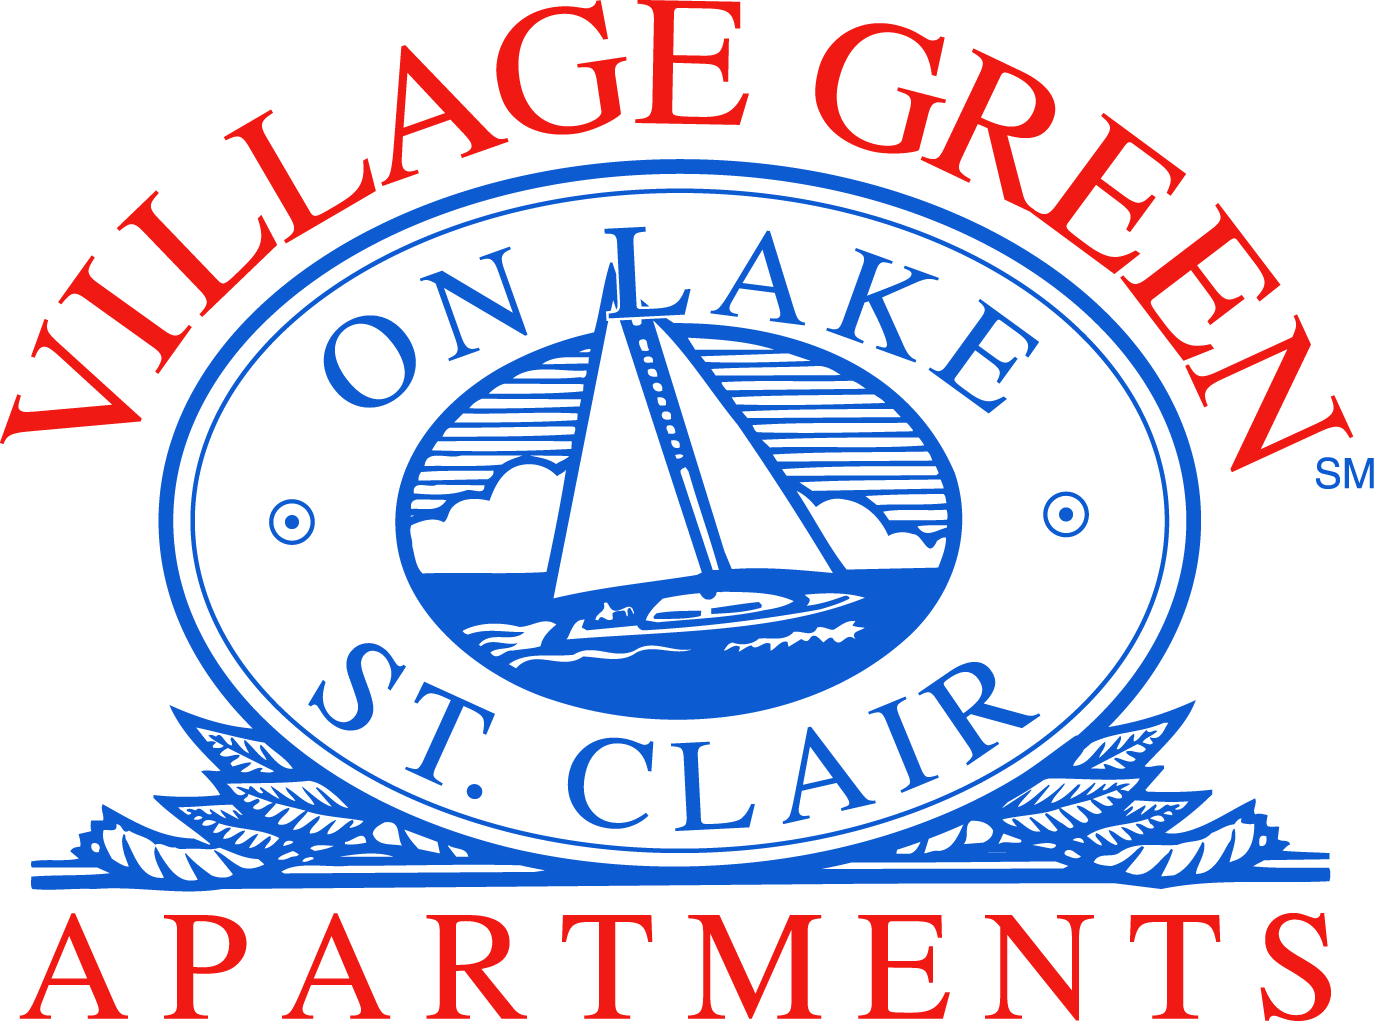 village green apartments, harrison township